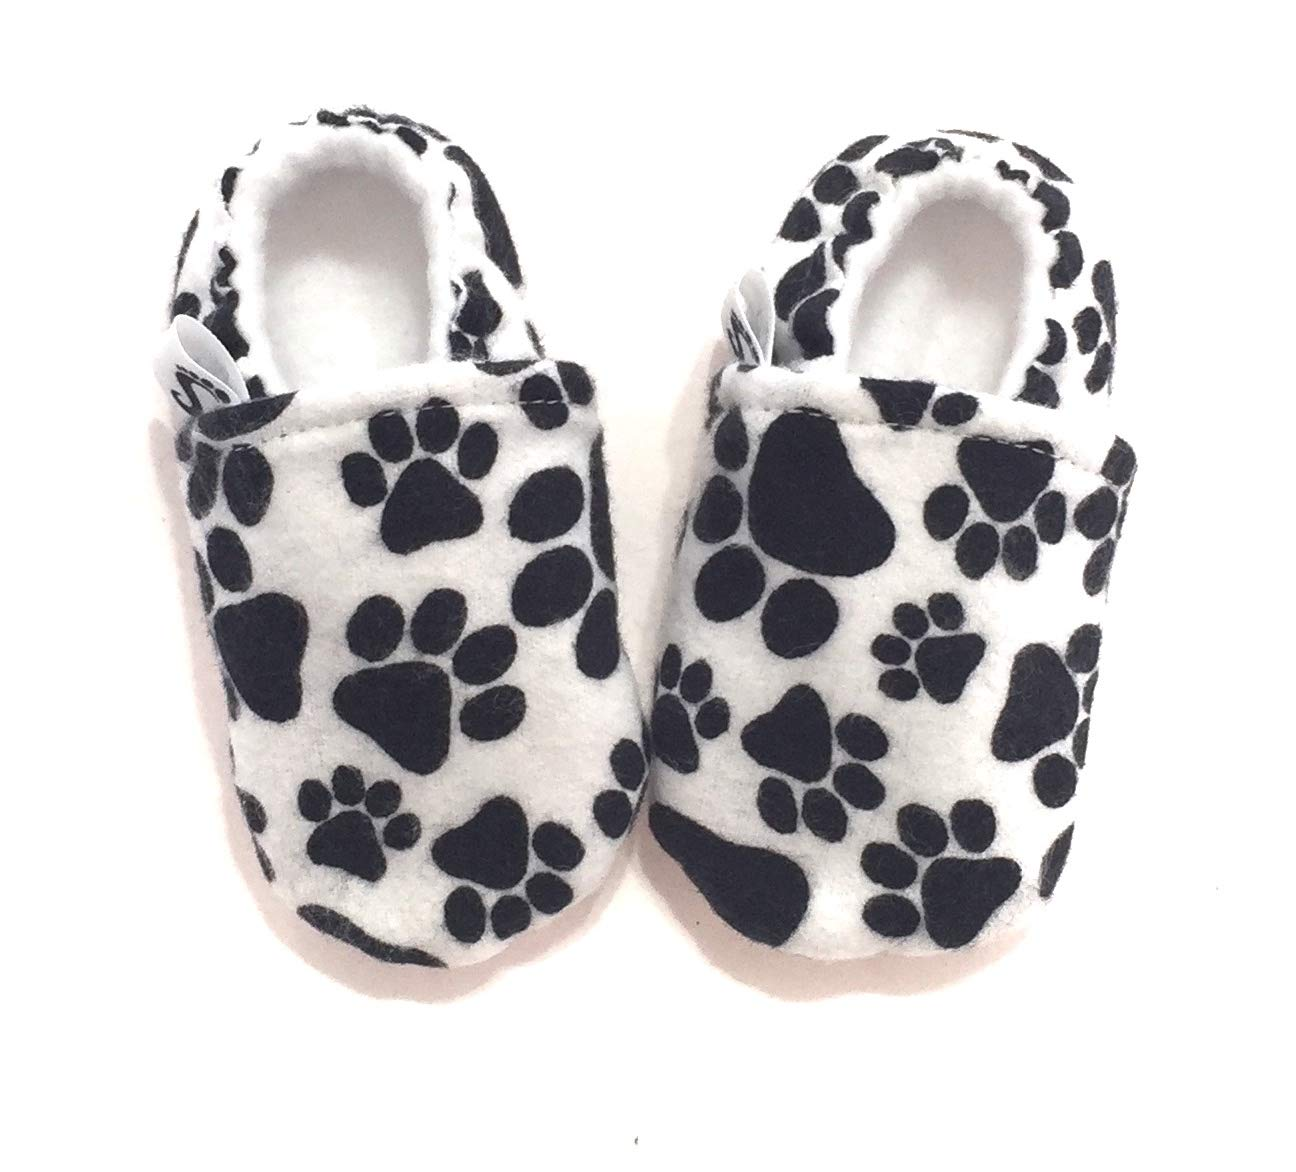 ec65ba7188974 Amazon.com: Pawprint Baby Shoes, Dog Baby Shoes, Cat Baby Shoes ...